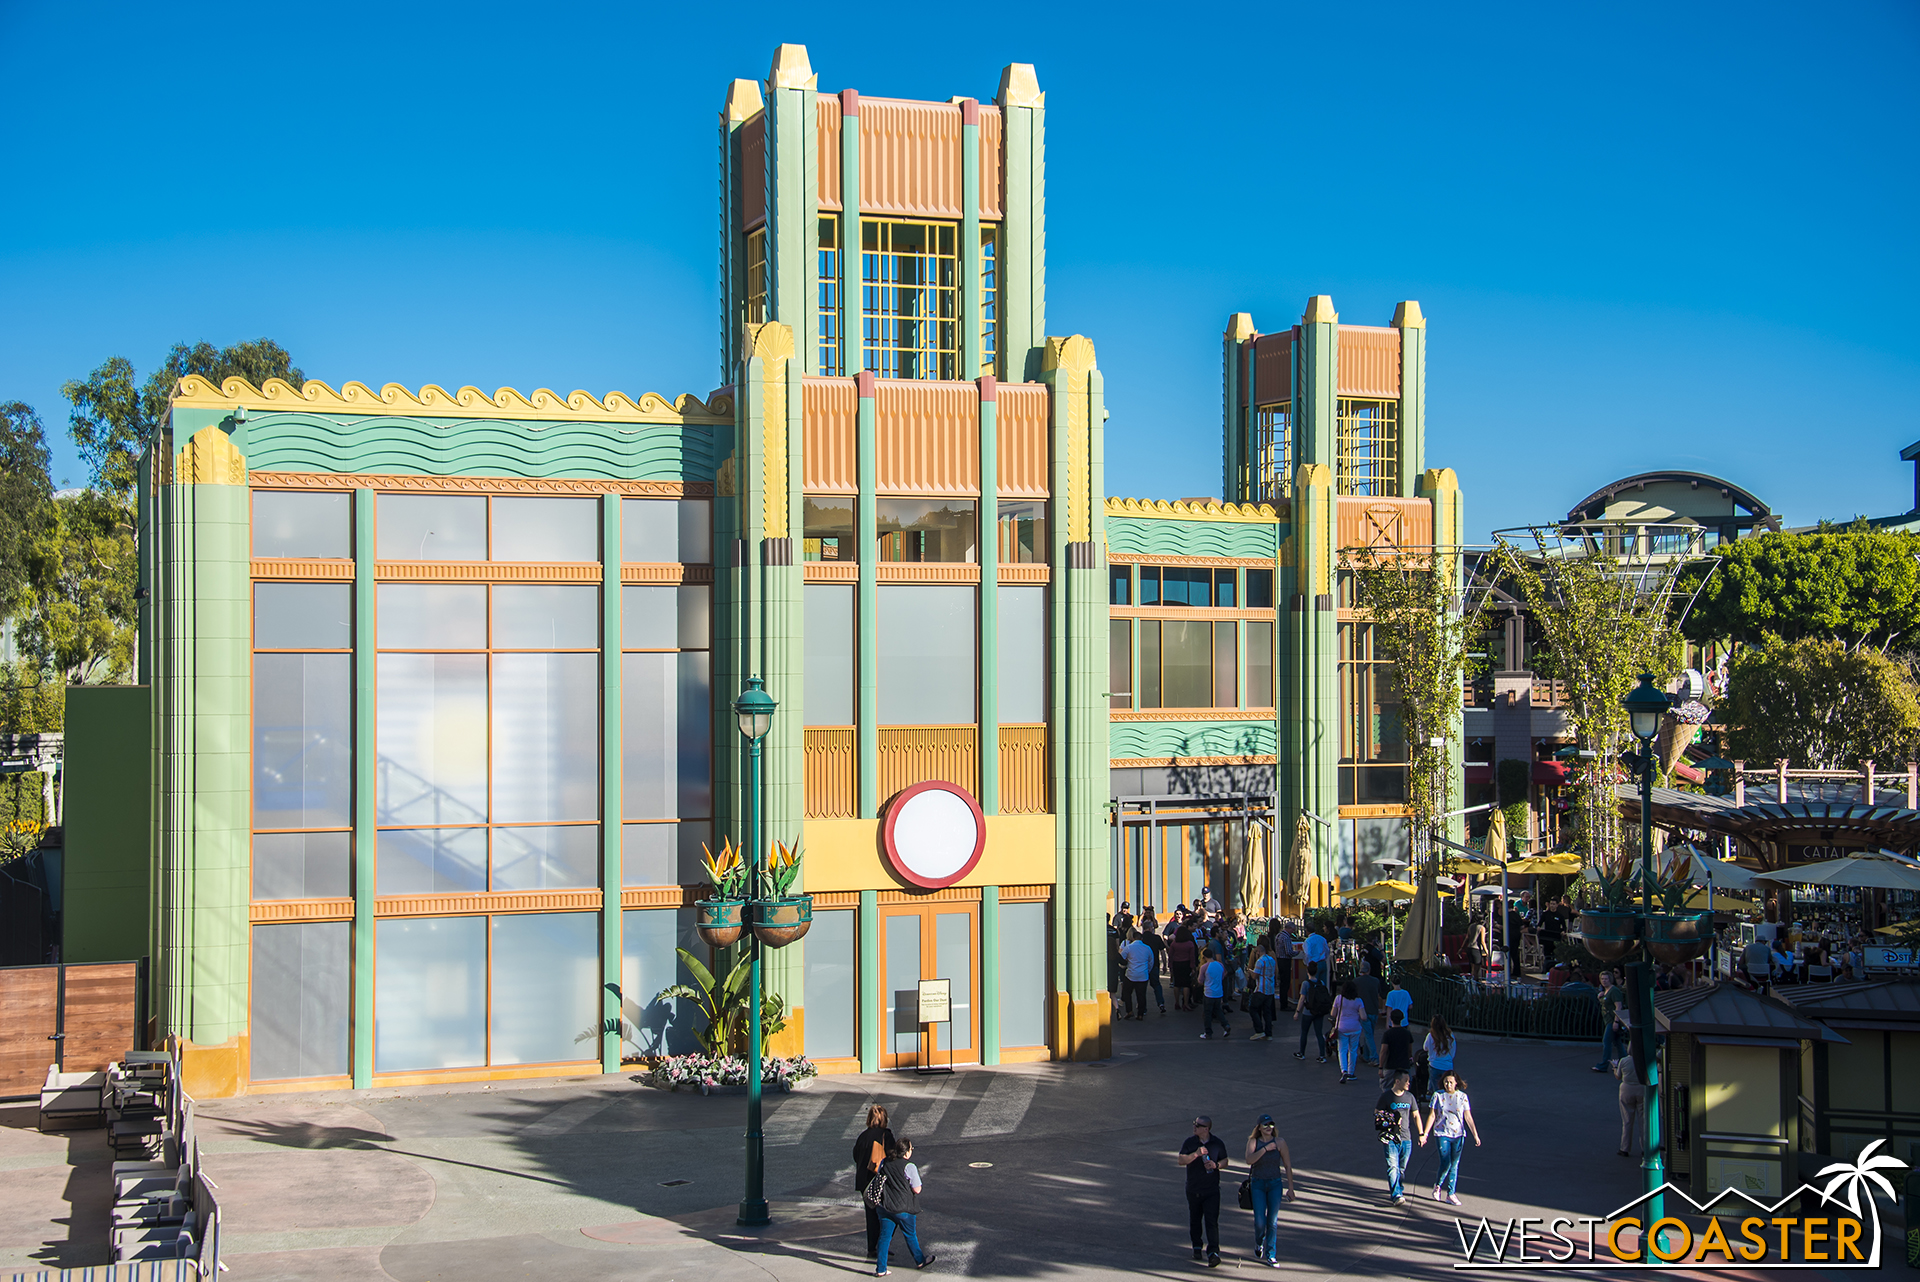 It's finally happened. Original Downtown Disney property Build-A-Bear is no more.